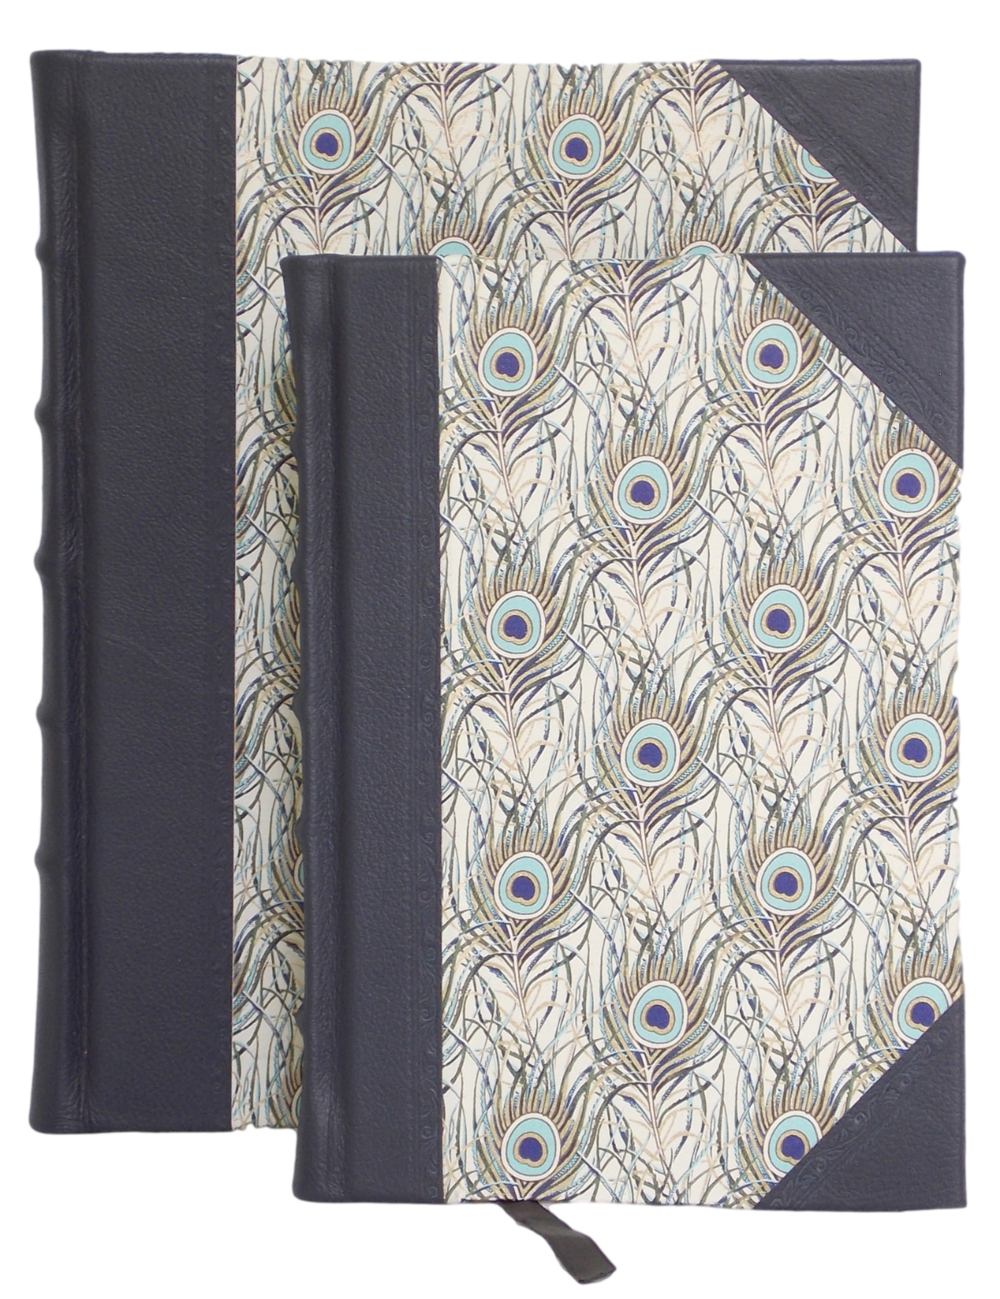 HALF LEATHER JOURNAL IN PEACOCK DESIGN   Fine leather corners and spine with classic raised bands and hand tooling  Italian gold foiled peacock feather design sides.  Cream textured pages with a marker ribbon  Product dimensions: small (22cm x 14cm - 84 leaves),  large (26cm x 20cm - 100 leaves)